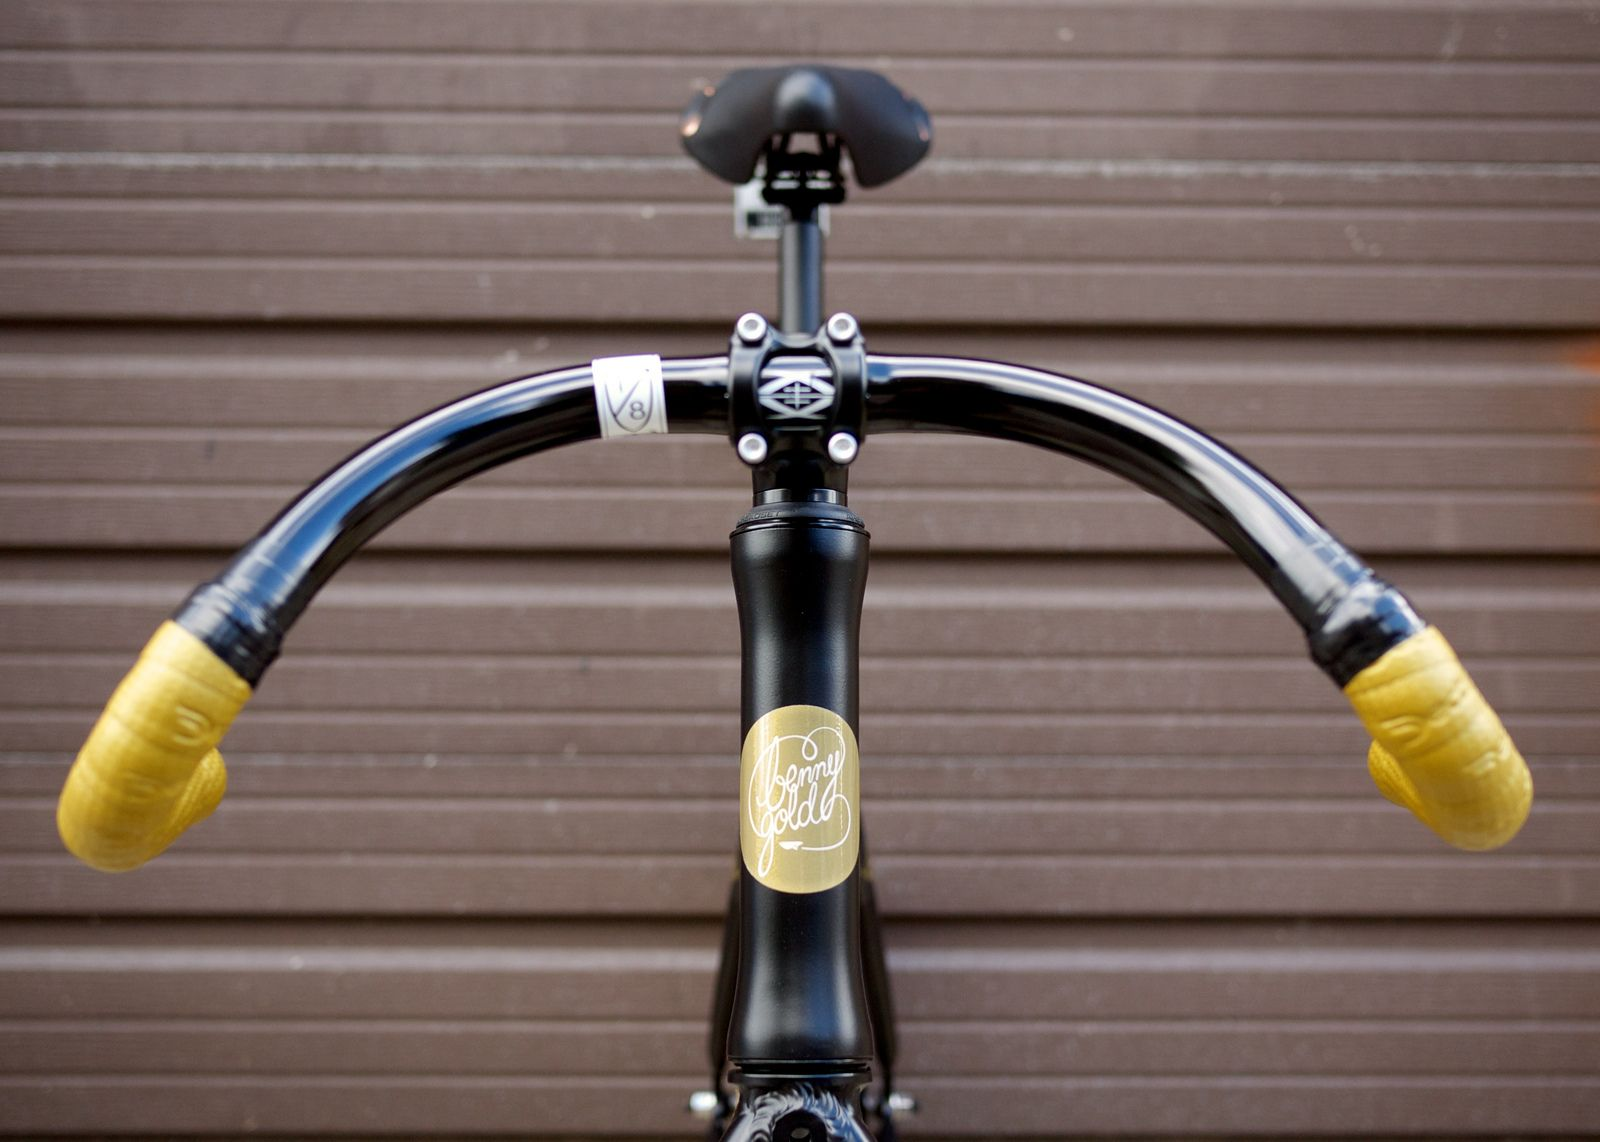 Toto Fresco for Michael | IWantToRideMyBicycle | Pinterest | Bicycling